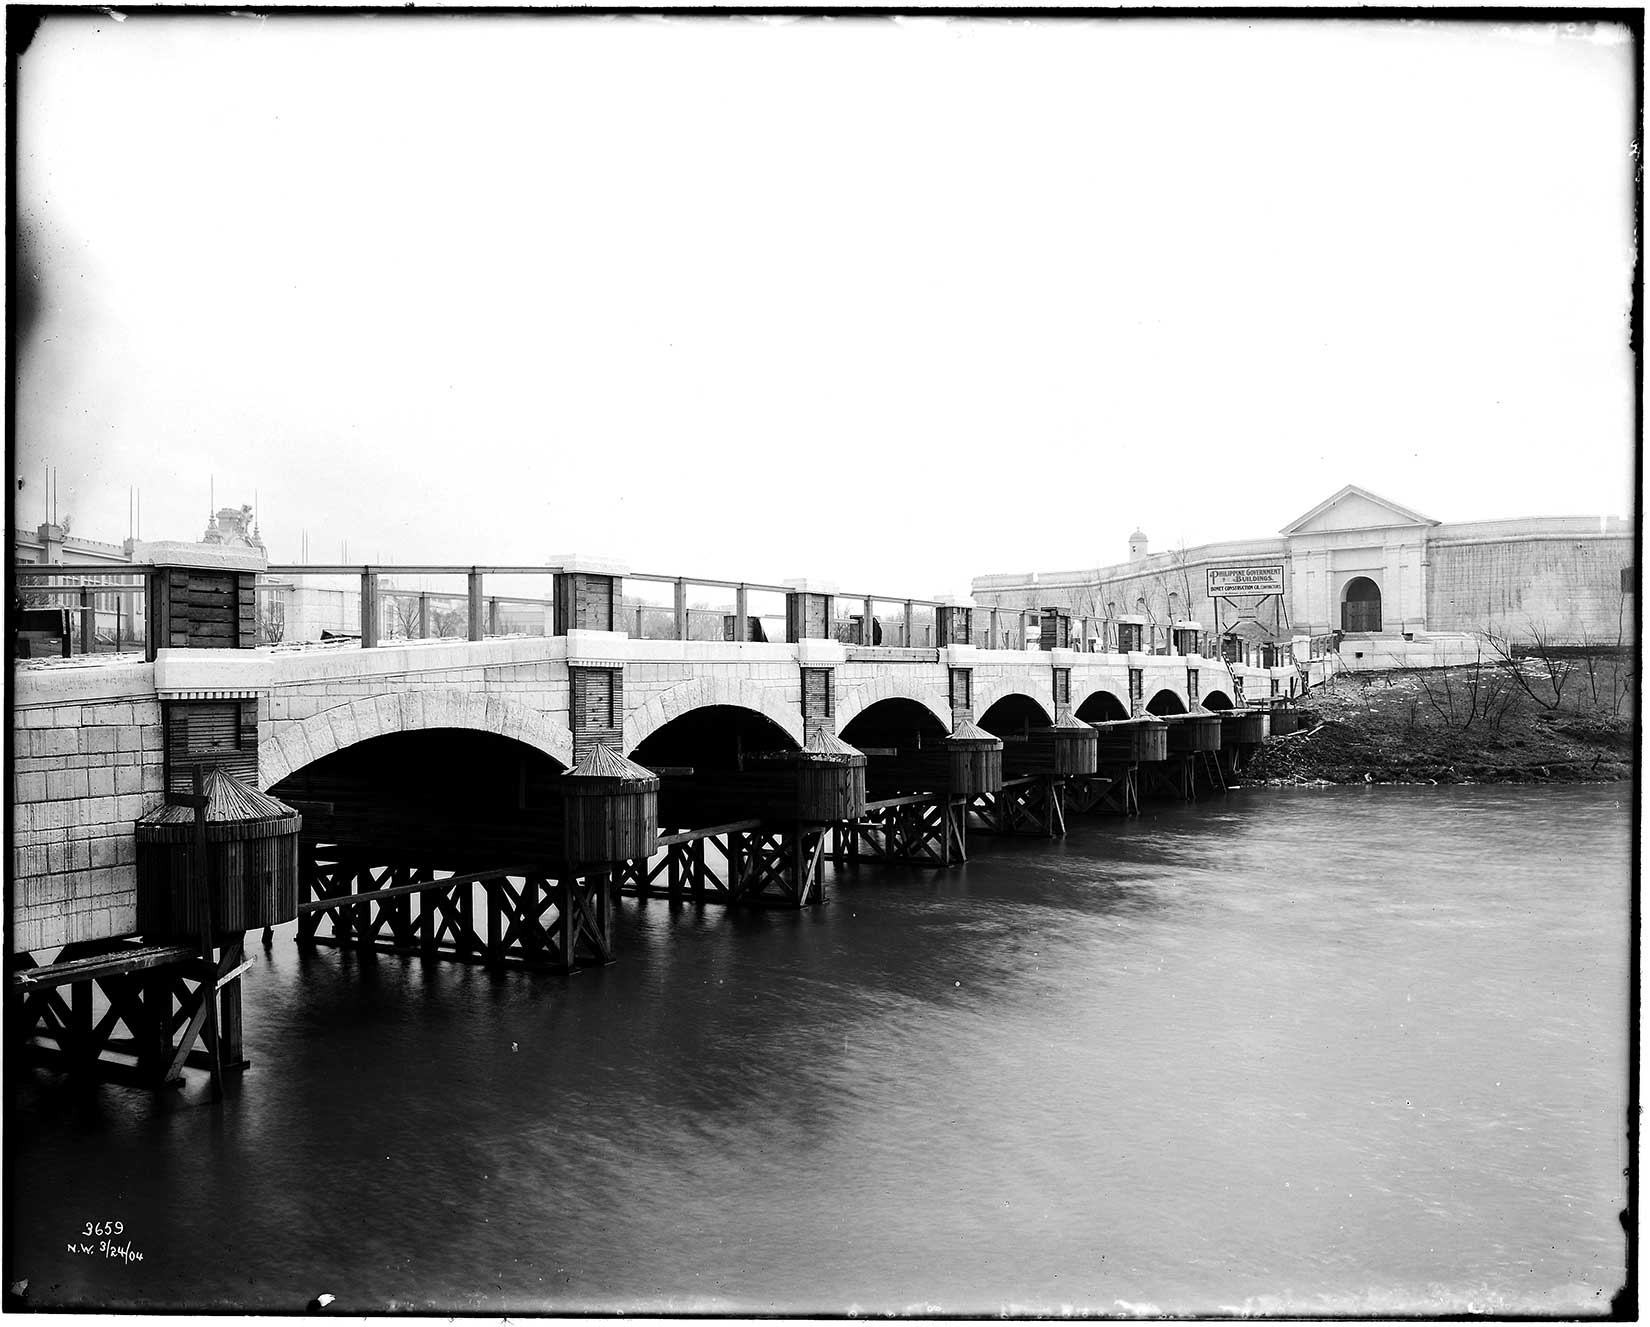 1904-worlds-fair-bridge-spain-intramuros